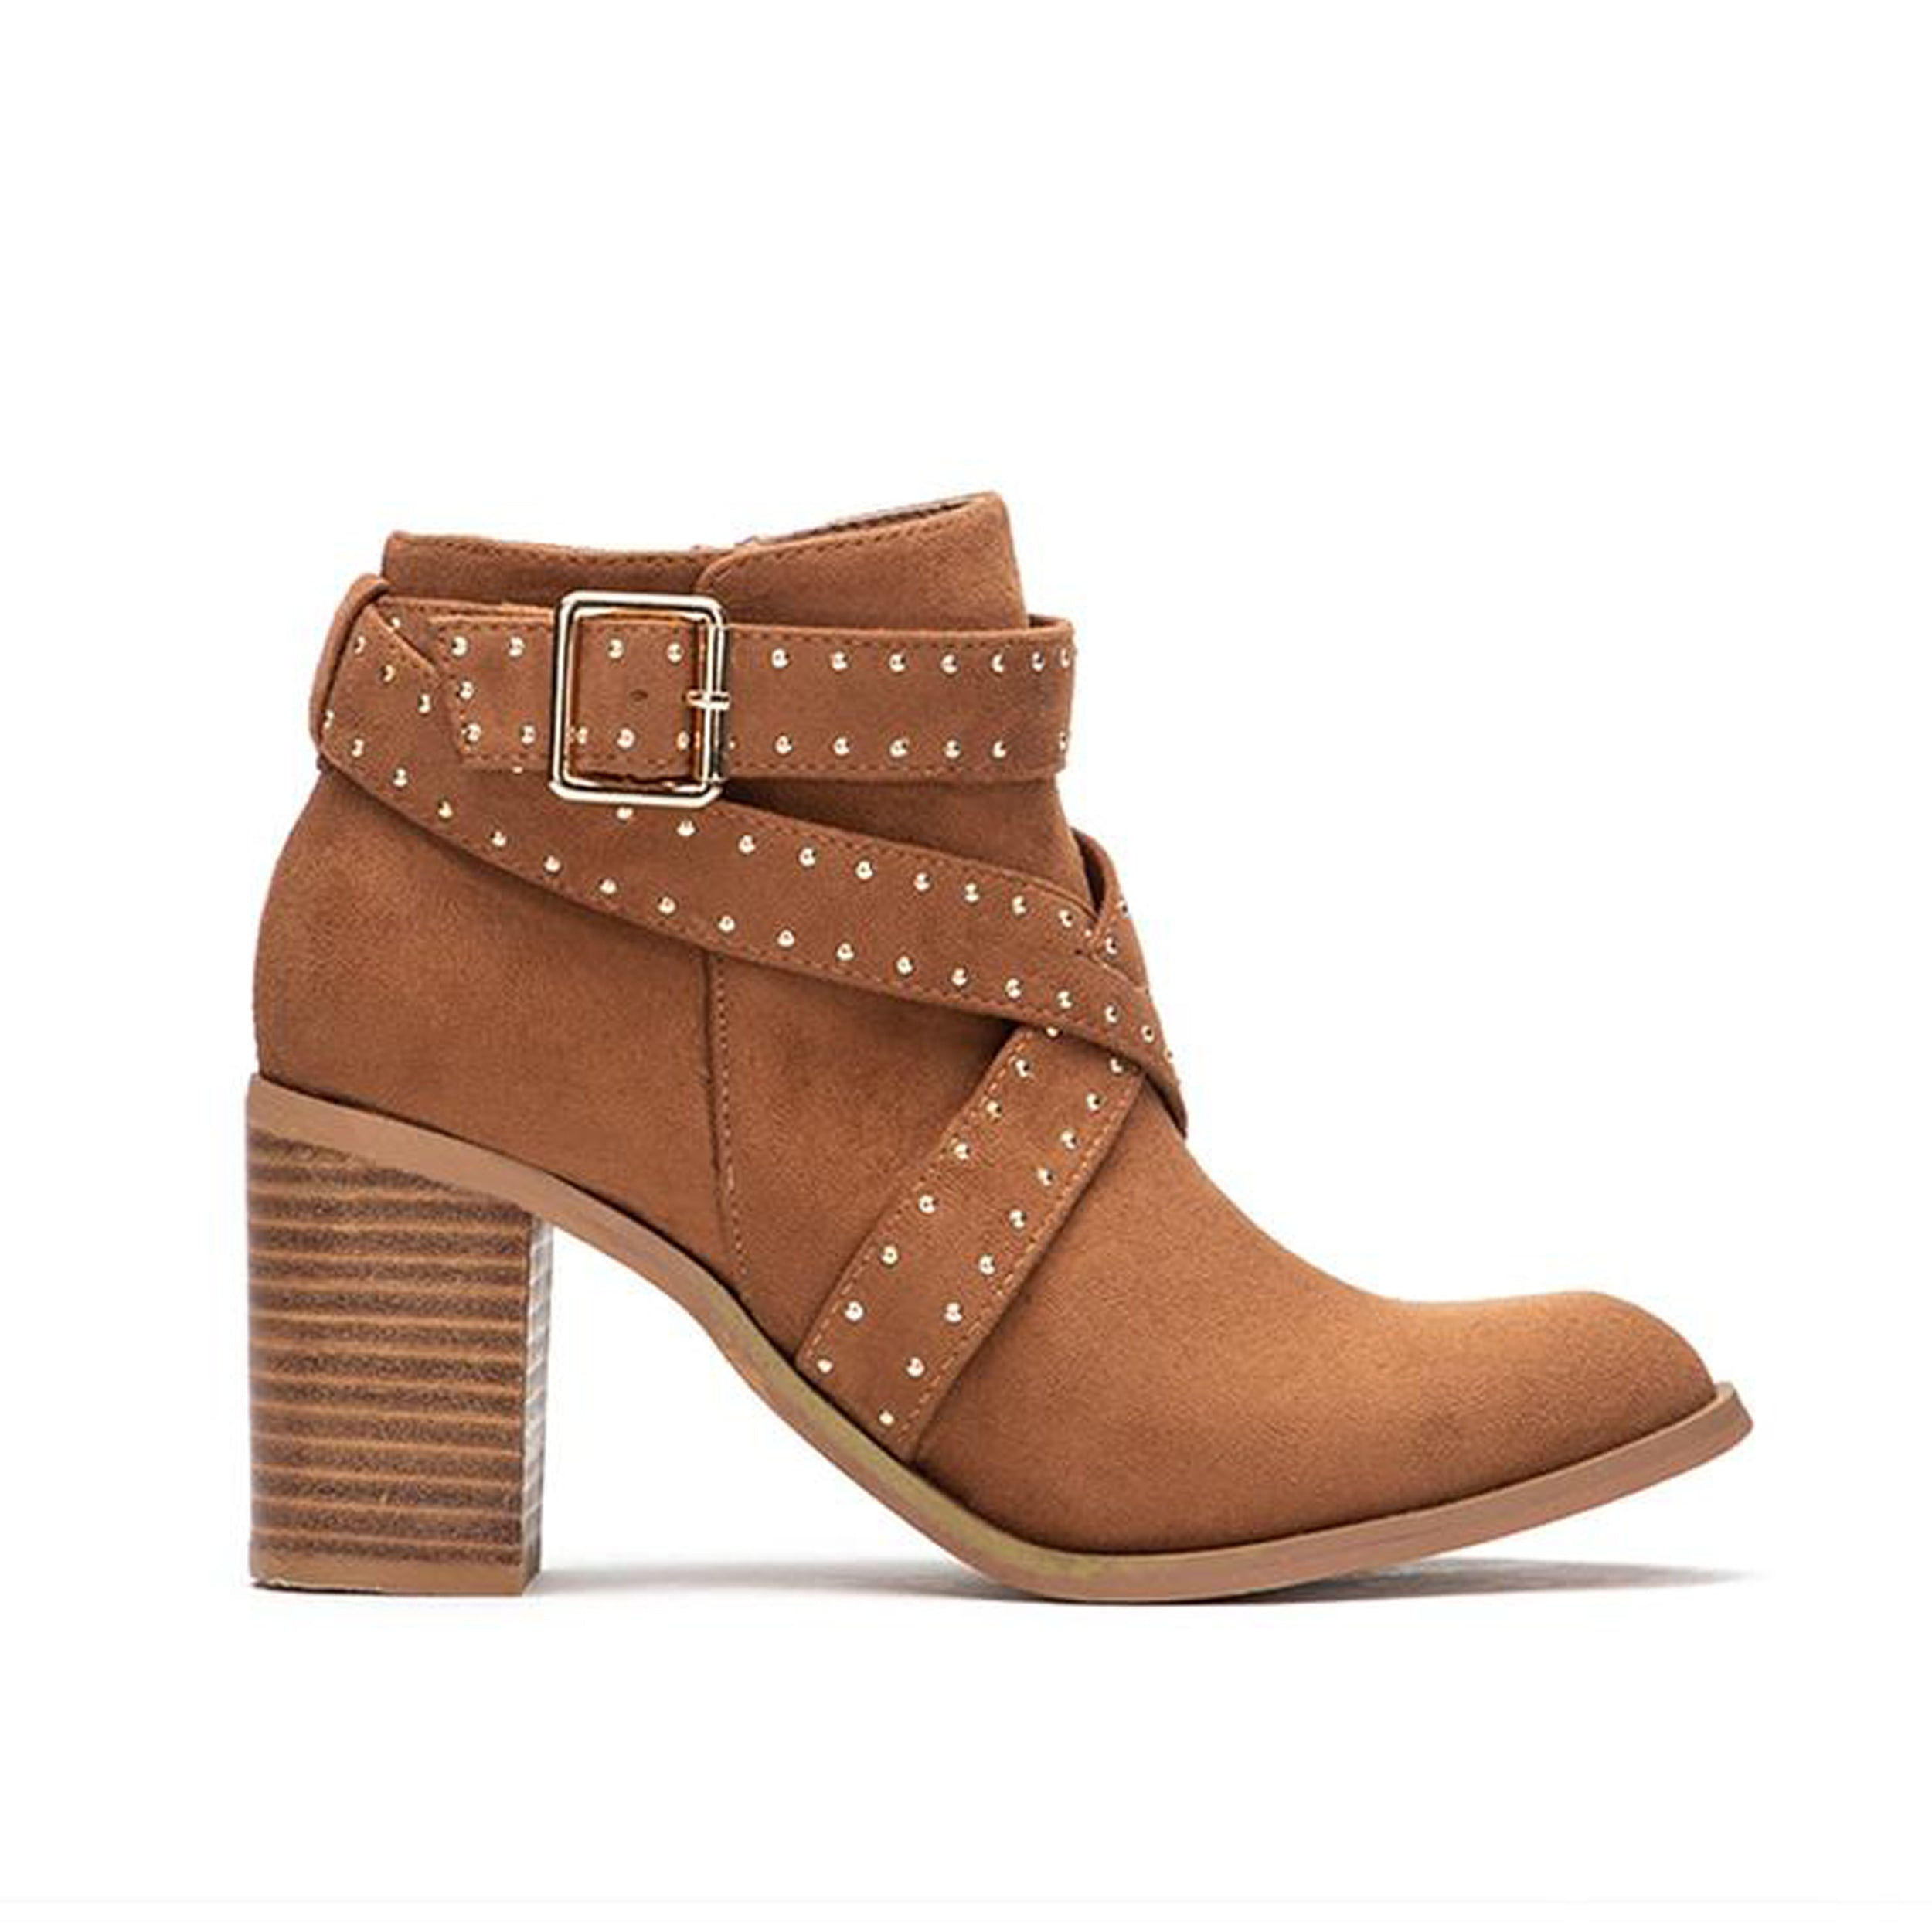 Oracle - Wrap Around Strap Bootie - Izzabel